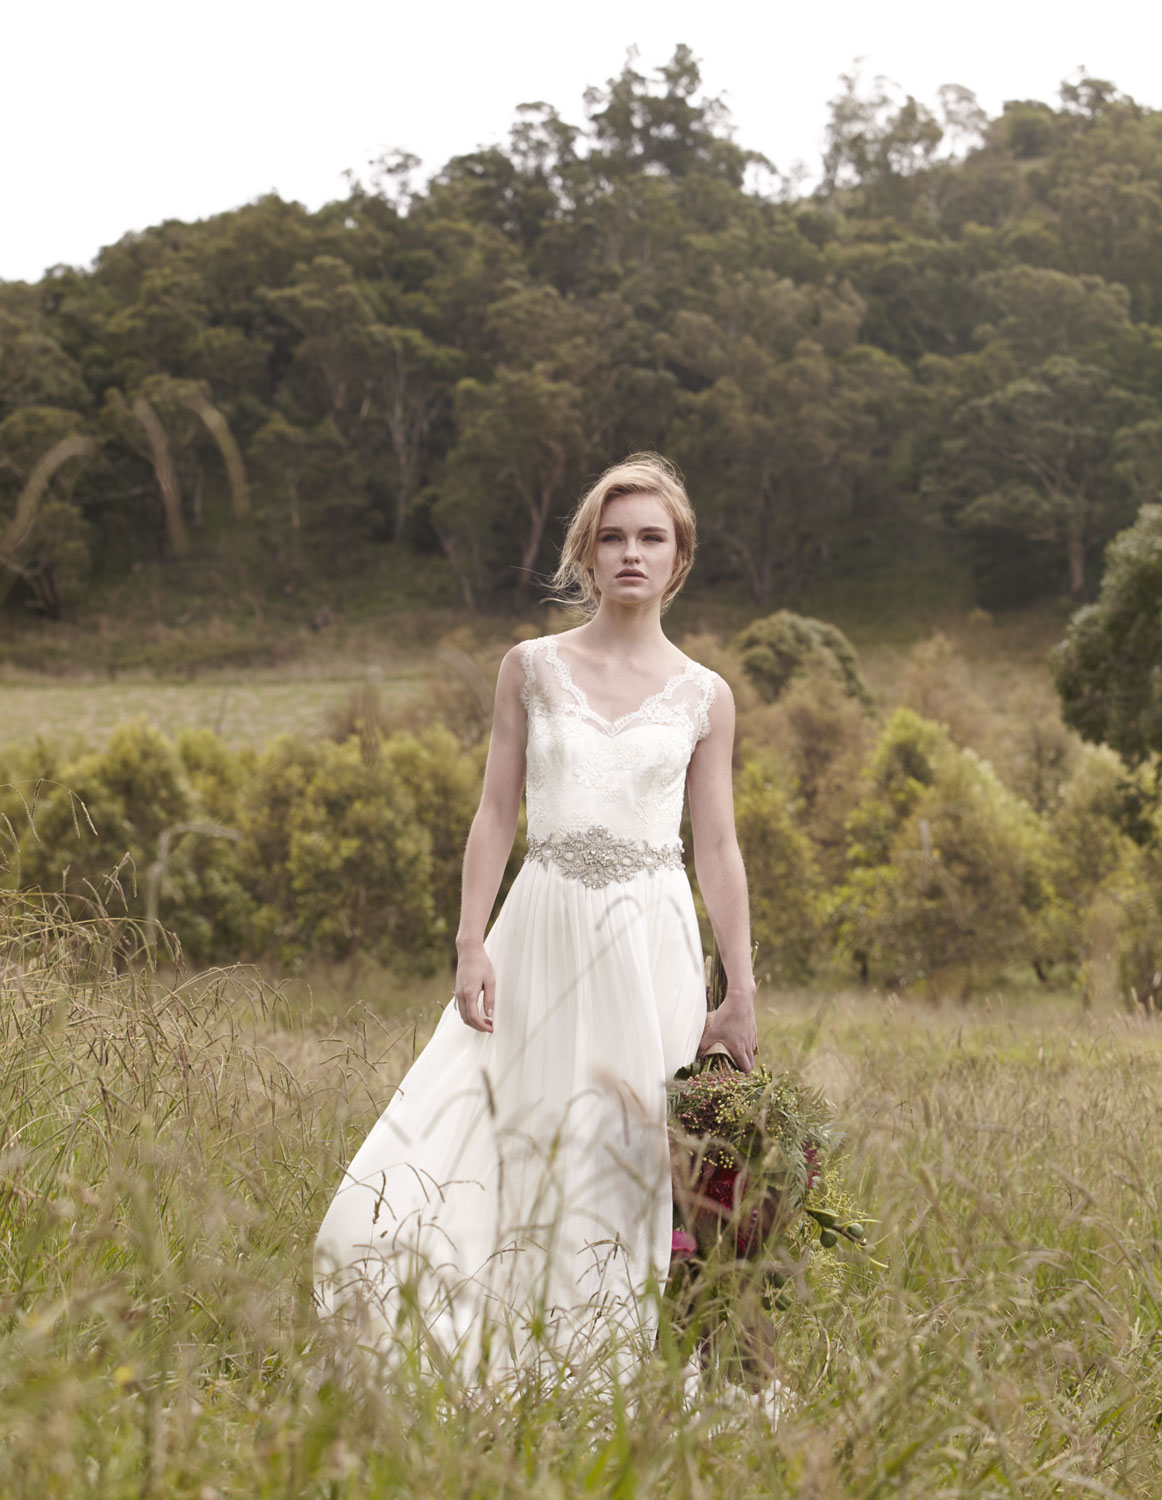 Gown by Lilli Marcs 9357 4408 / lillimarcs.com.au Bouquet by Form Over Function